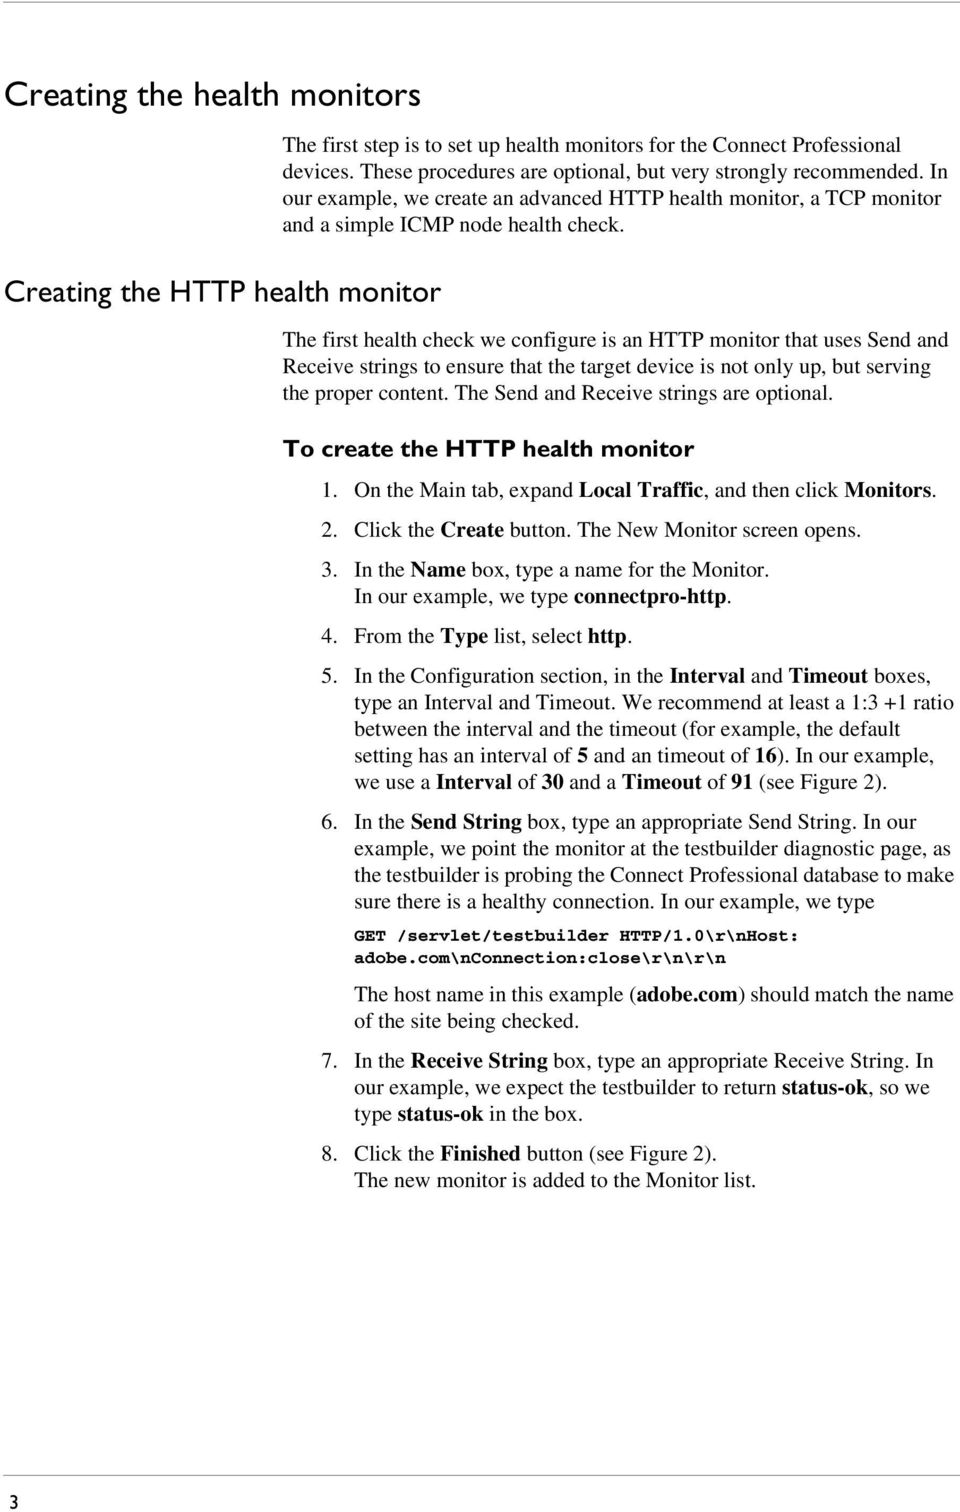 The first health check we configure is an HTTP monitor that uses Send and Receive strings to ensure that the target device is not only up, but serving the proper content.